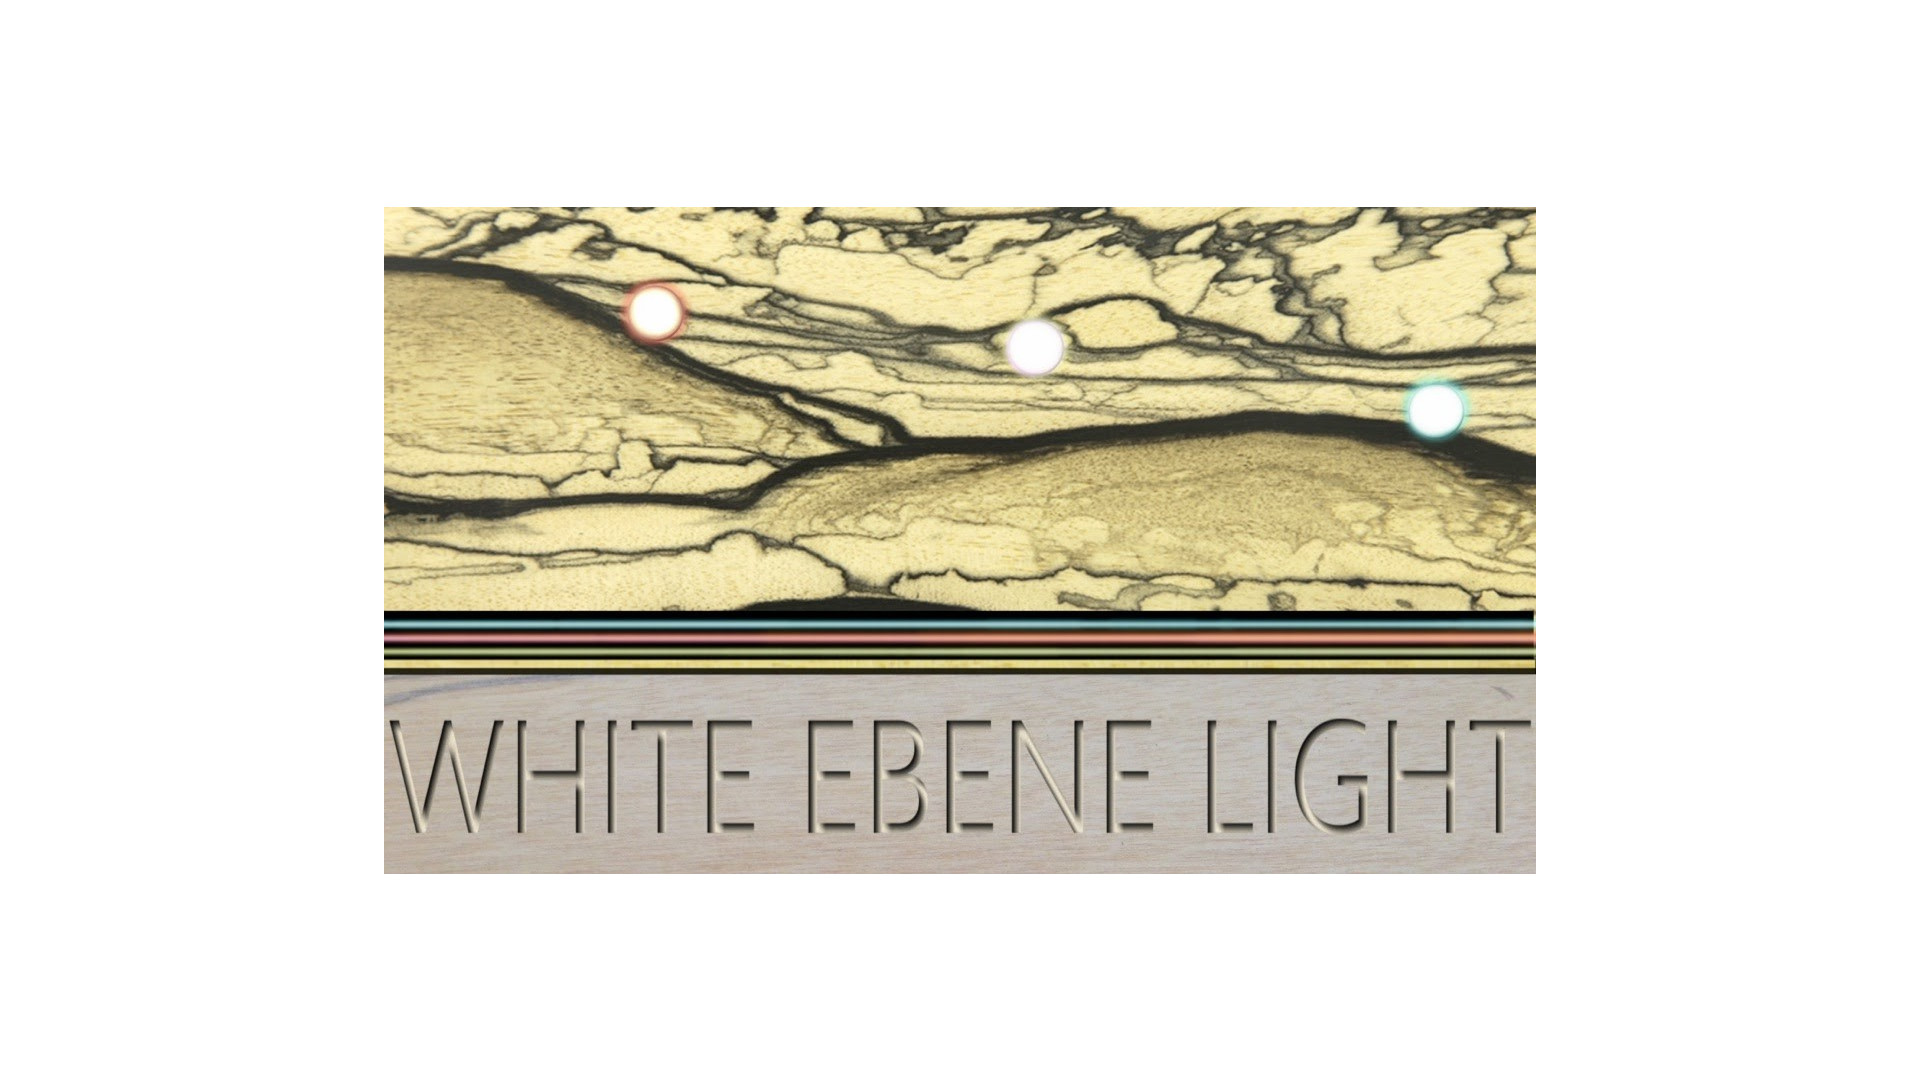 WHITE EBENE LIGHT (Carte de visite)